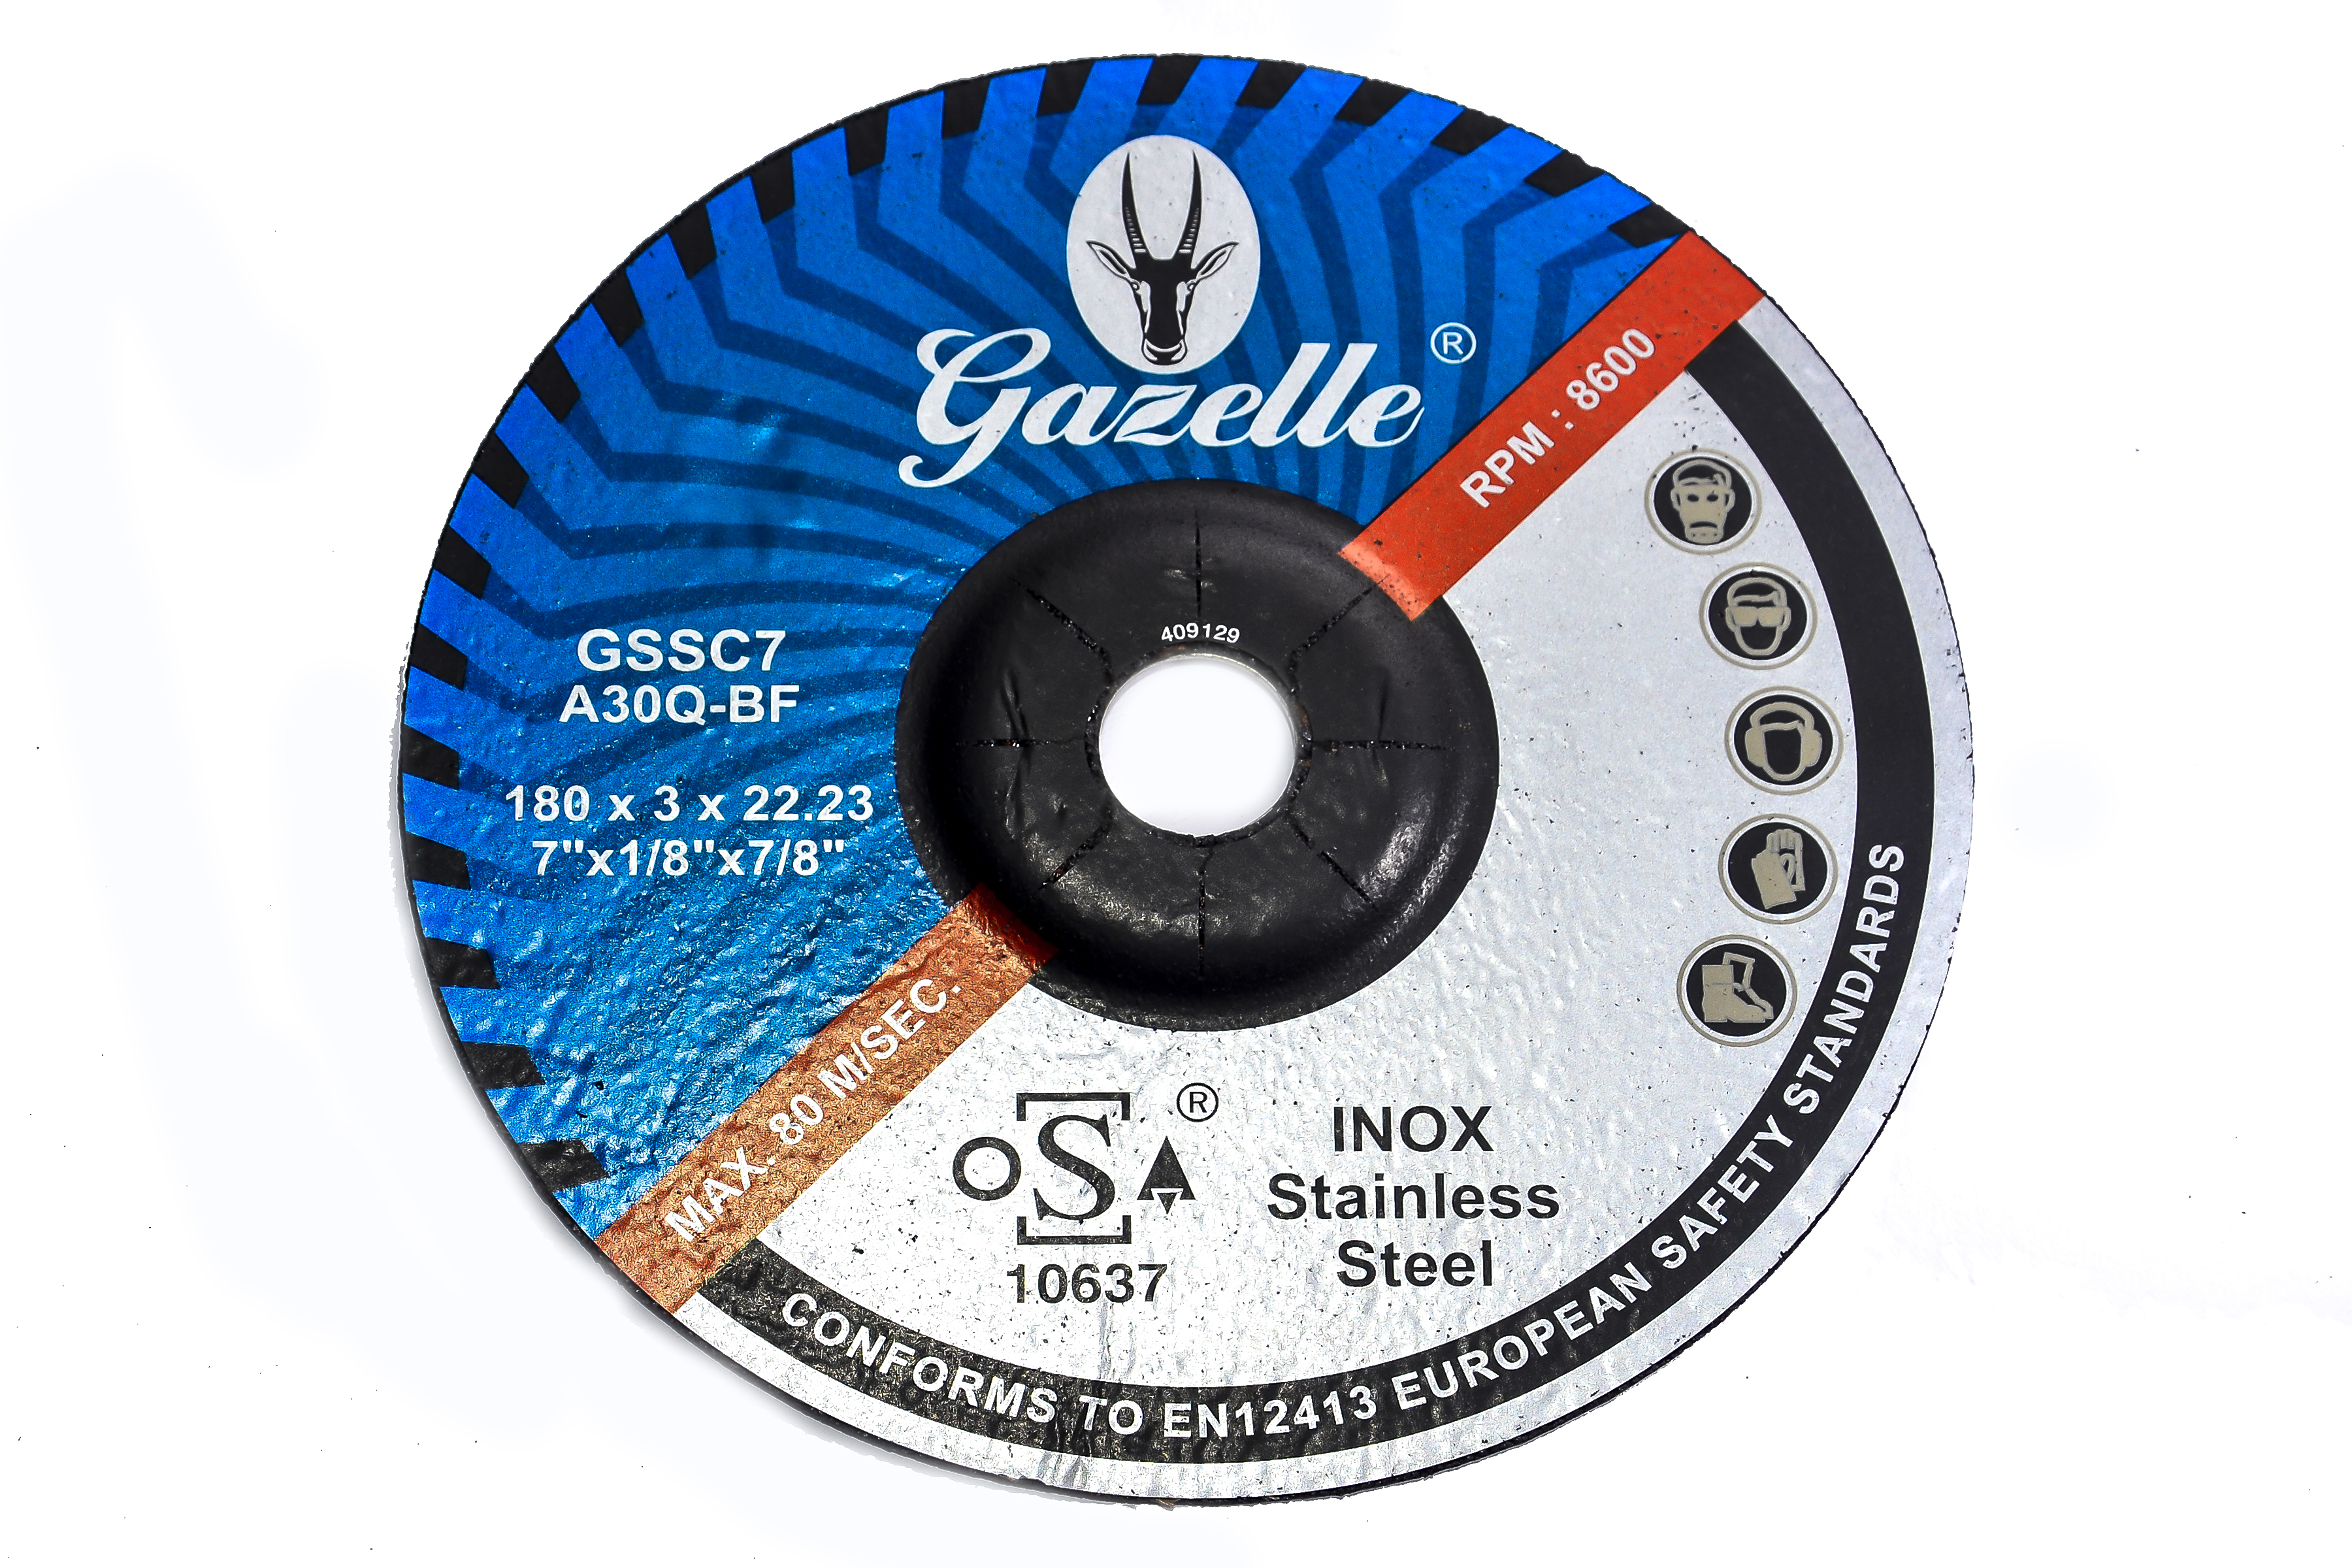 GAZELLE GSSC9 - Stainless Steel Cutting Disc 9in – 230 x 3 x 22mm